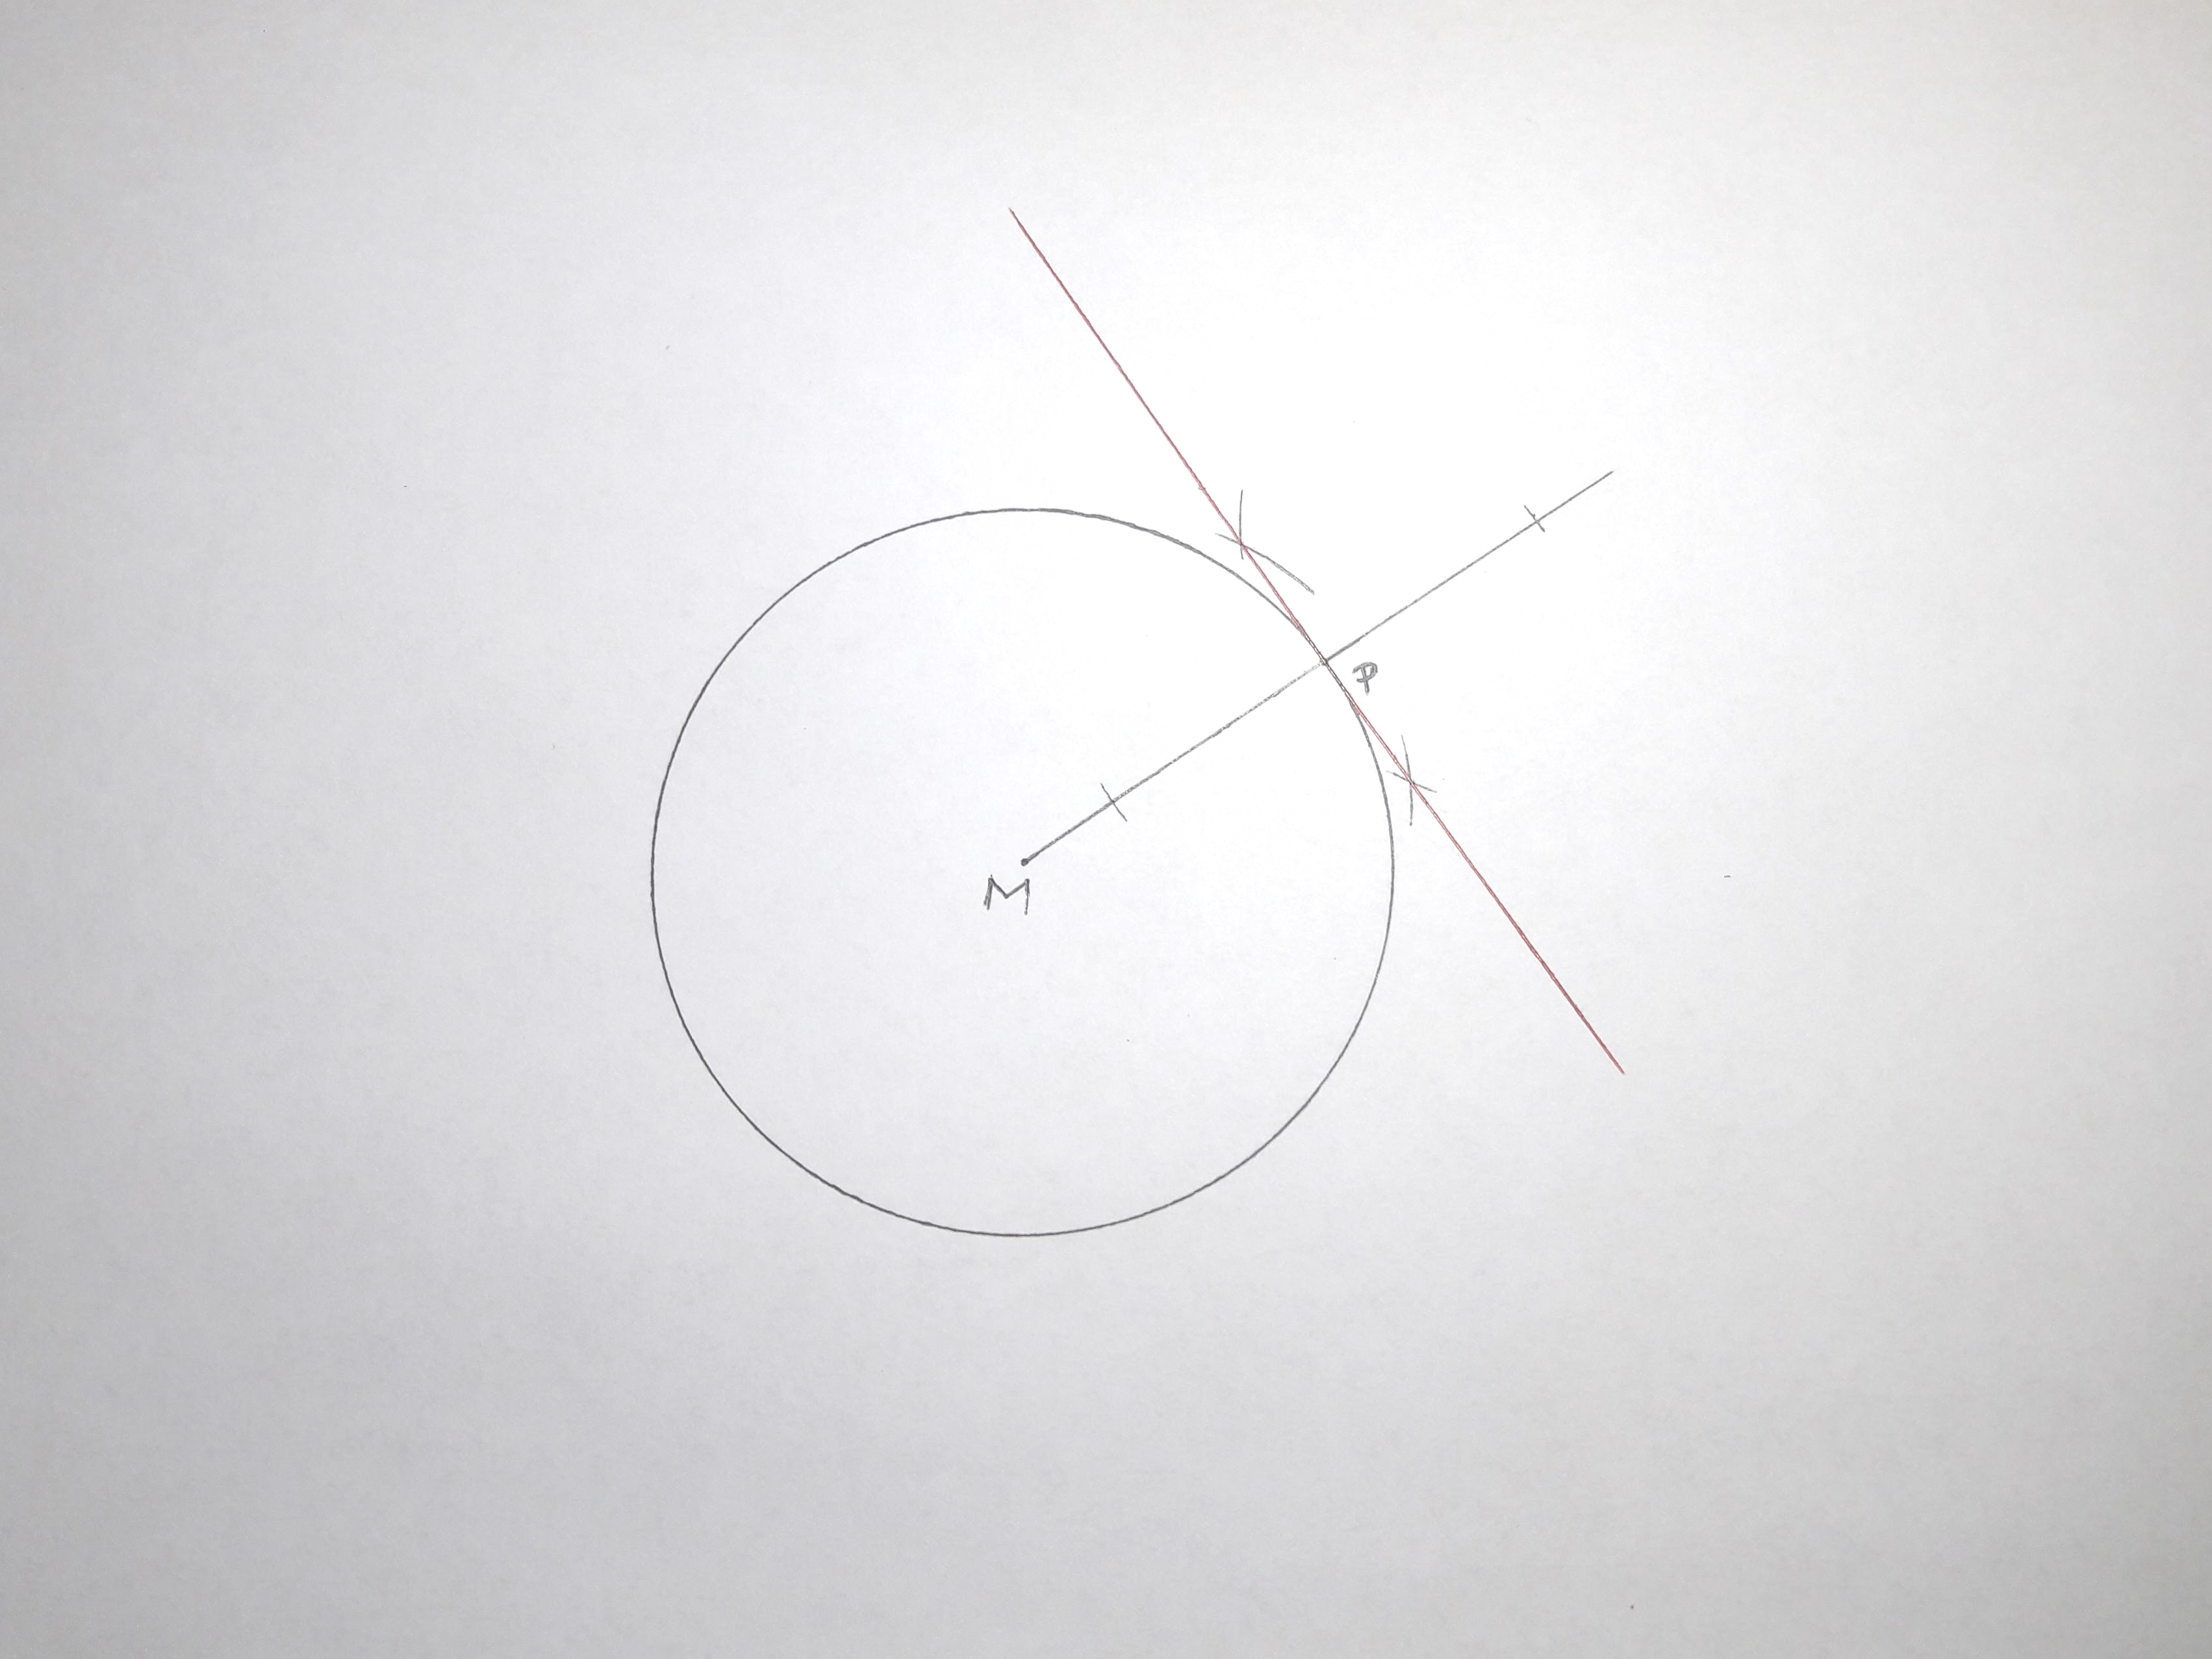 How To Construct The Tangent Line To A Circle 11 Steps